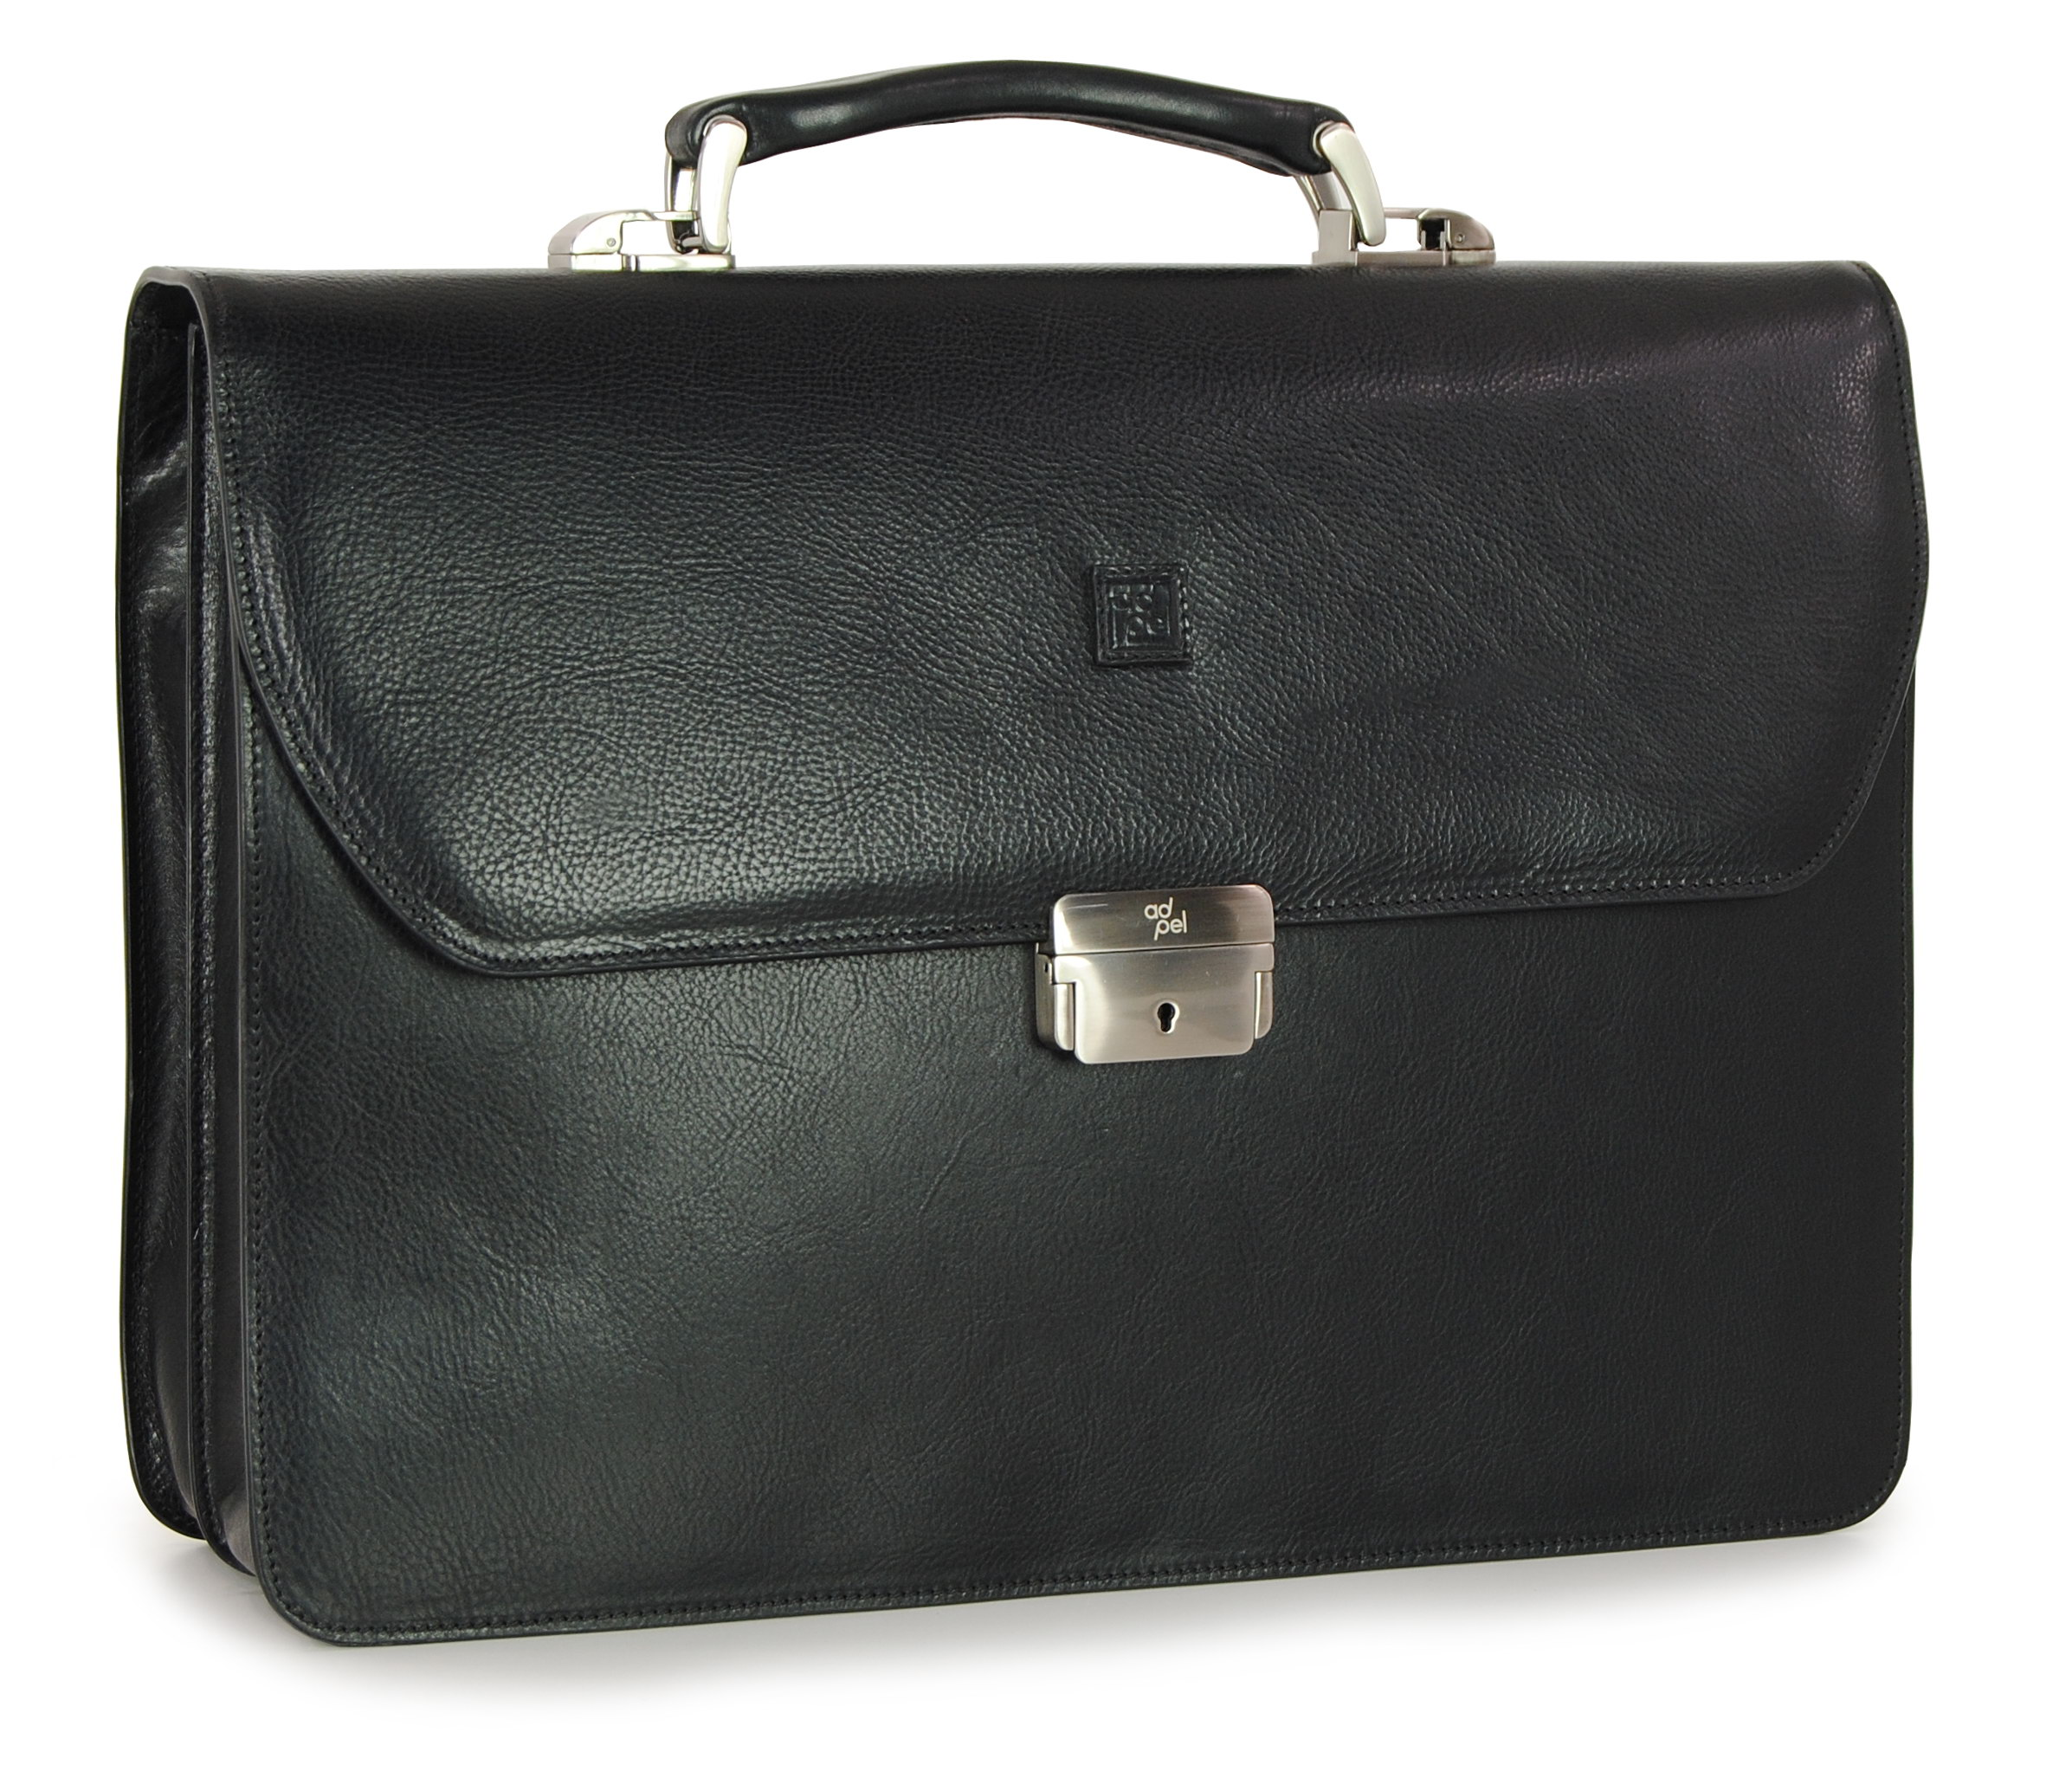 men's business bag in leather brown - made in Italy | Adpel